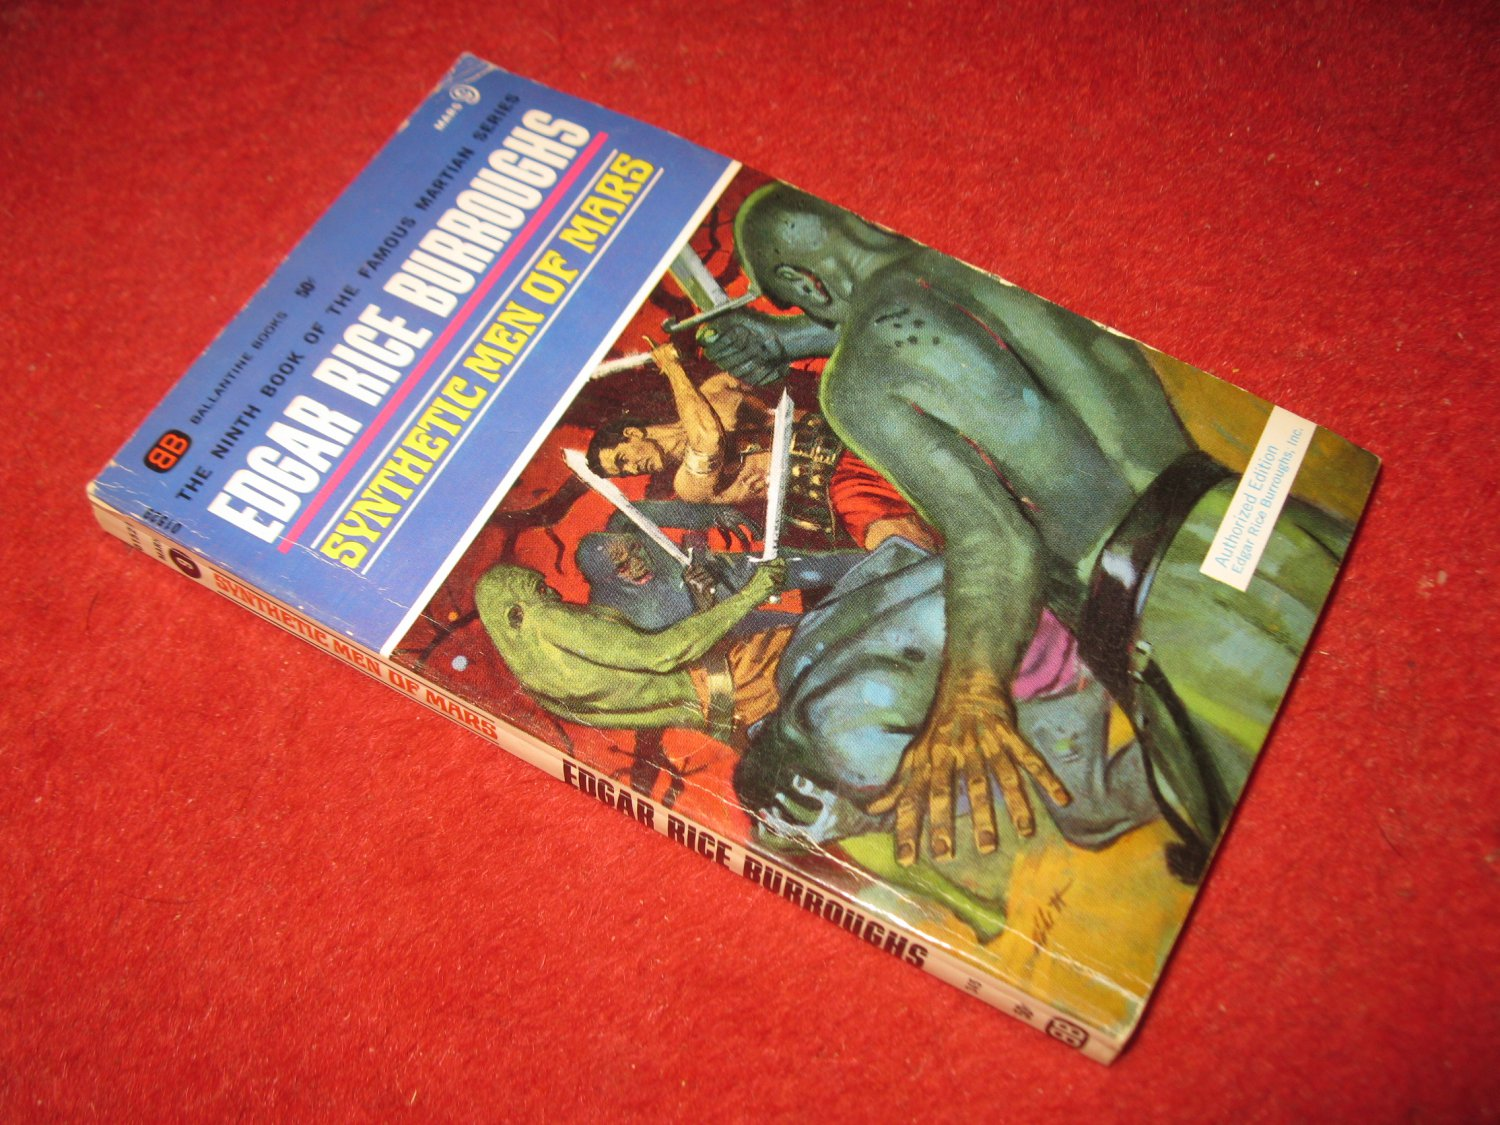 1969 Mars #9: Synthetic men of Mars - by Edgar Rice Burroughs - Ballantine books - paperback